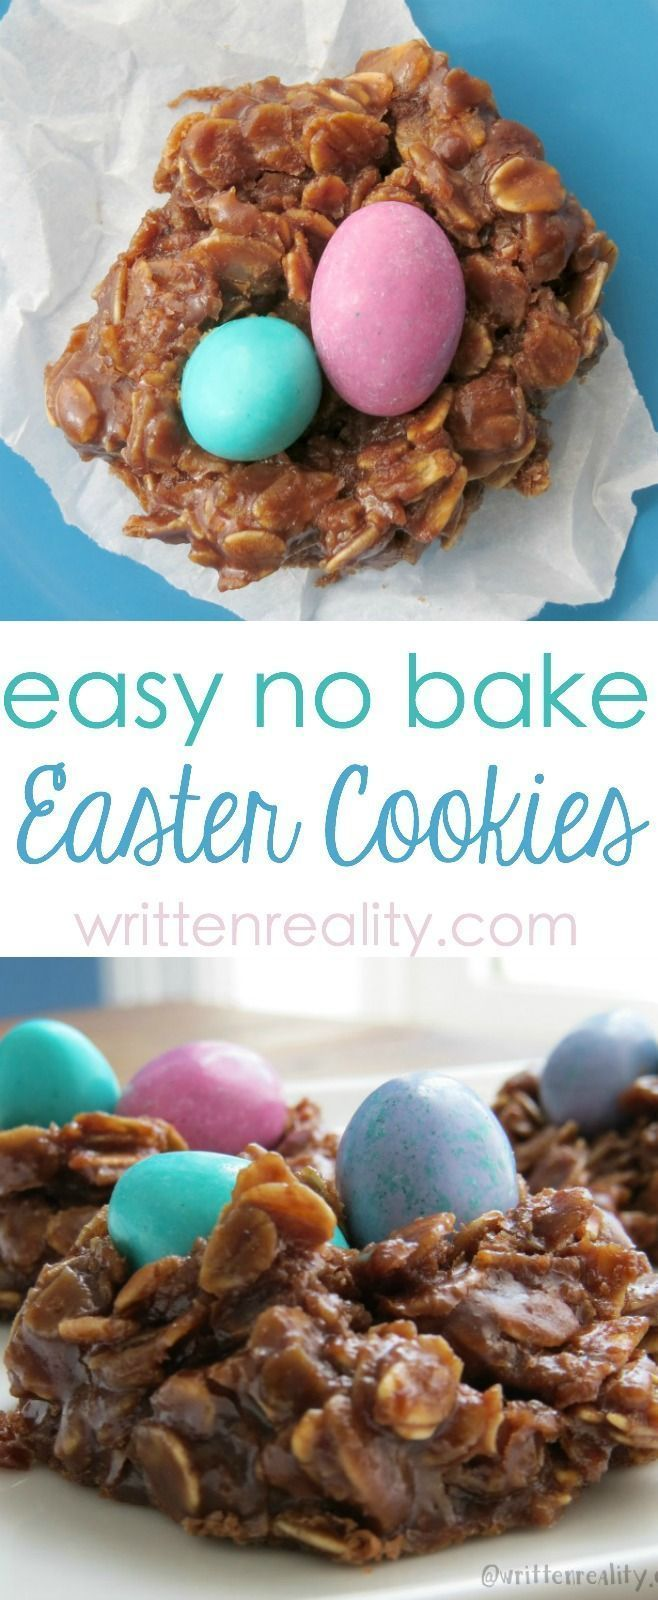 Easy No Bake Easter Cookies : These easy no bake oatmeal cookies are super easy and delicious. #easter #nobake #cookies #easterdessert #eastertreats #eastercookies #oatmeal